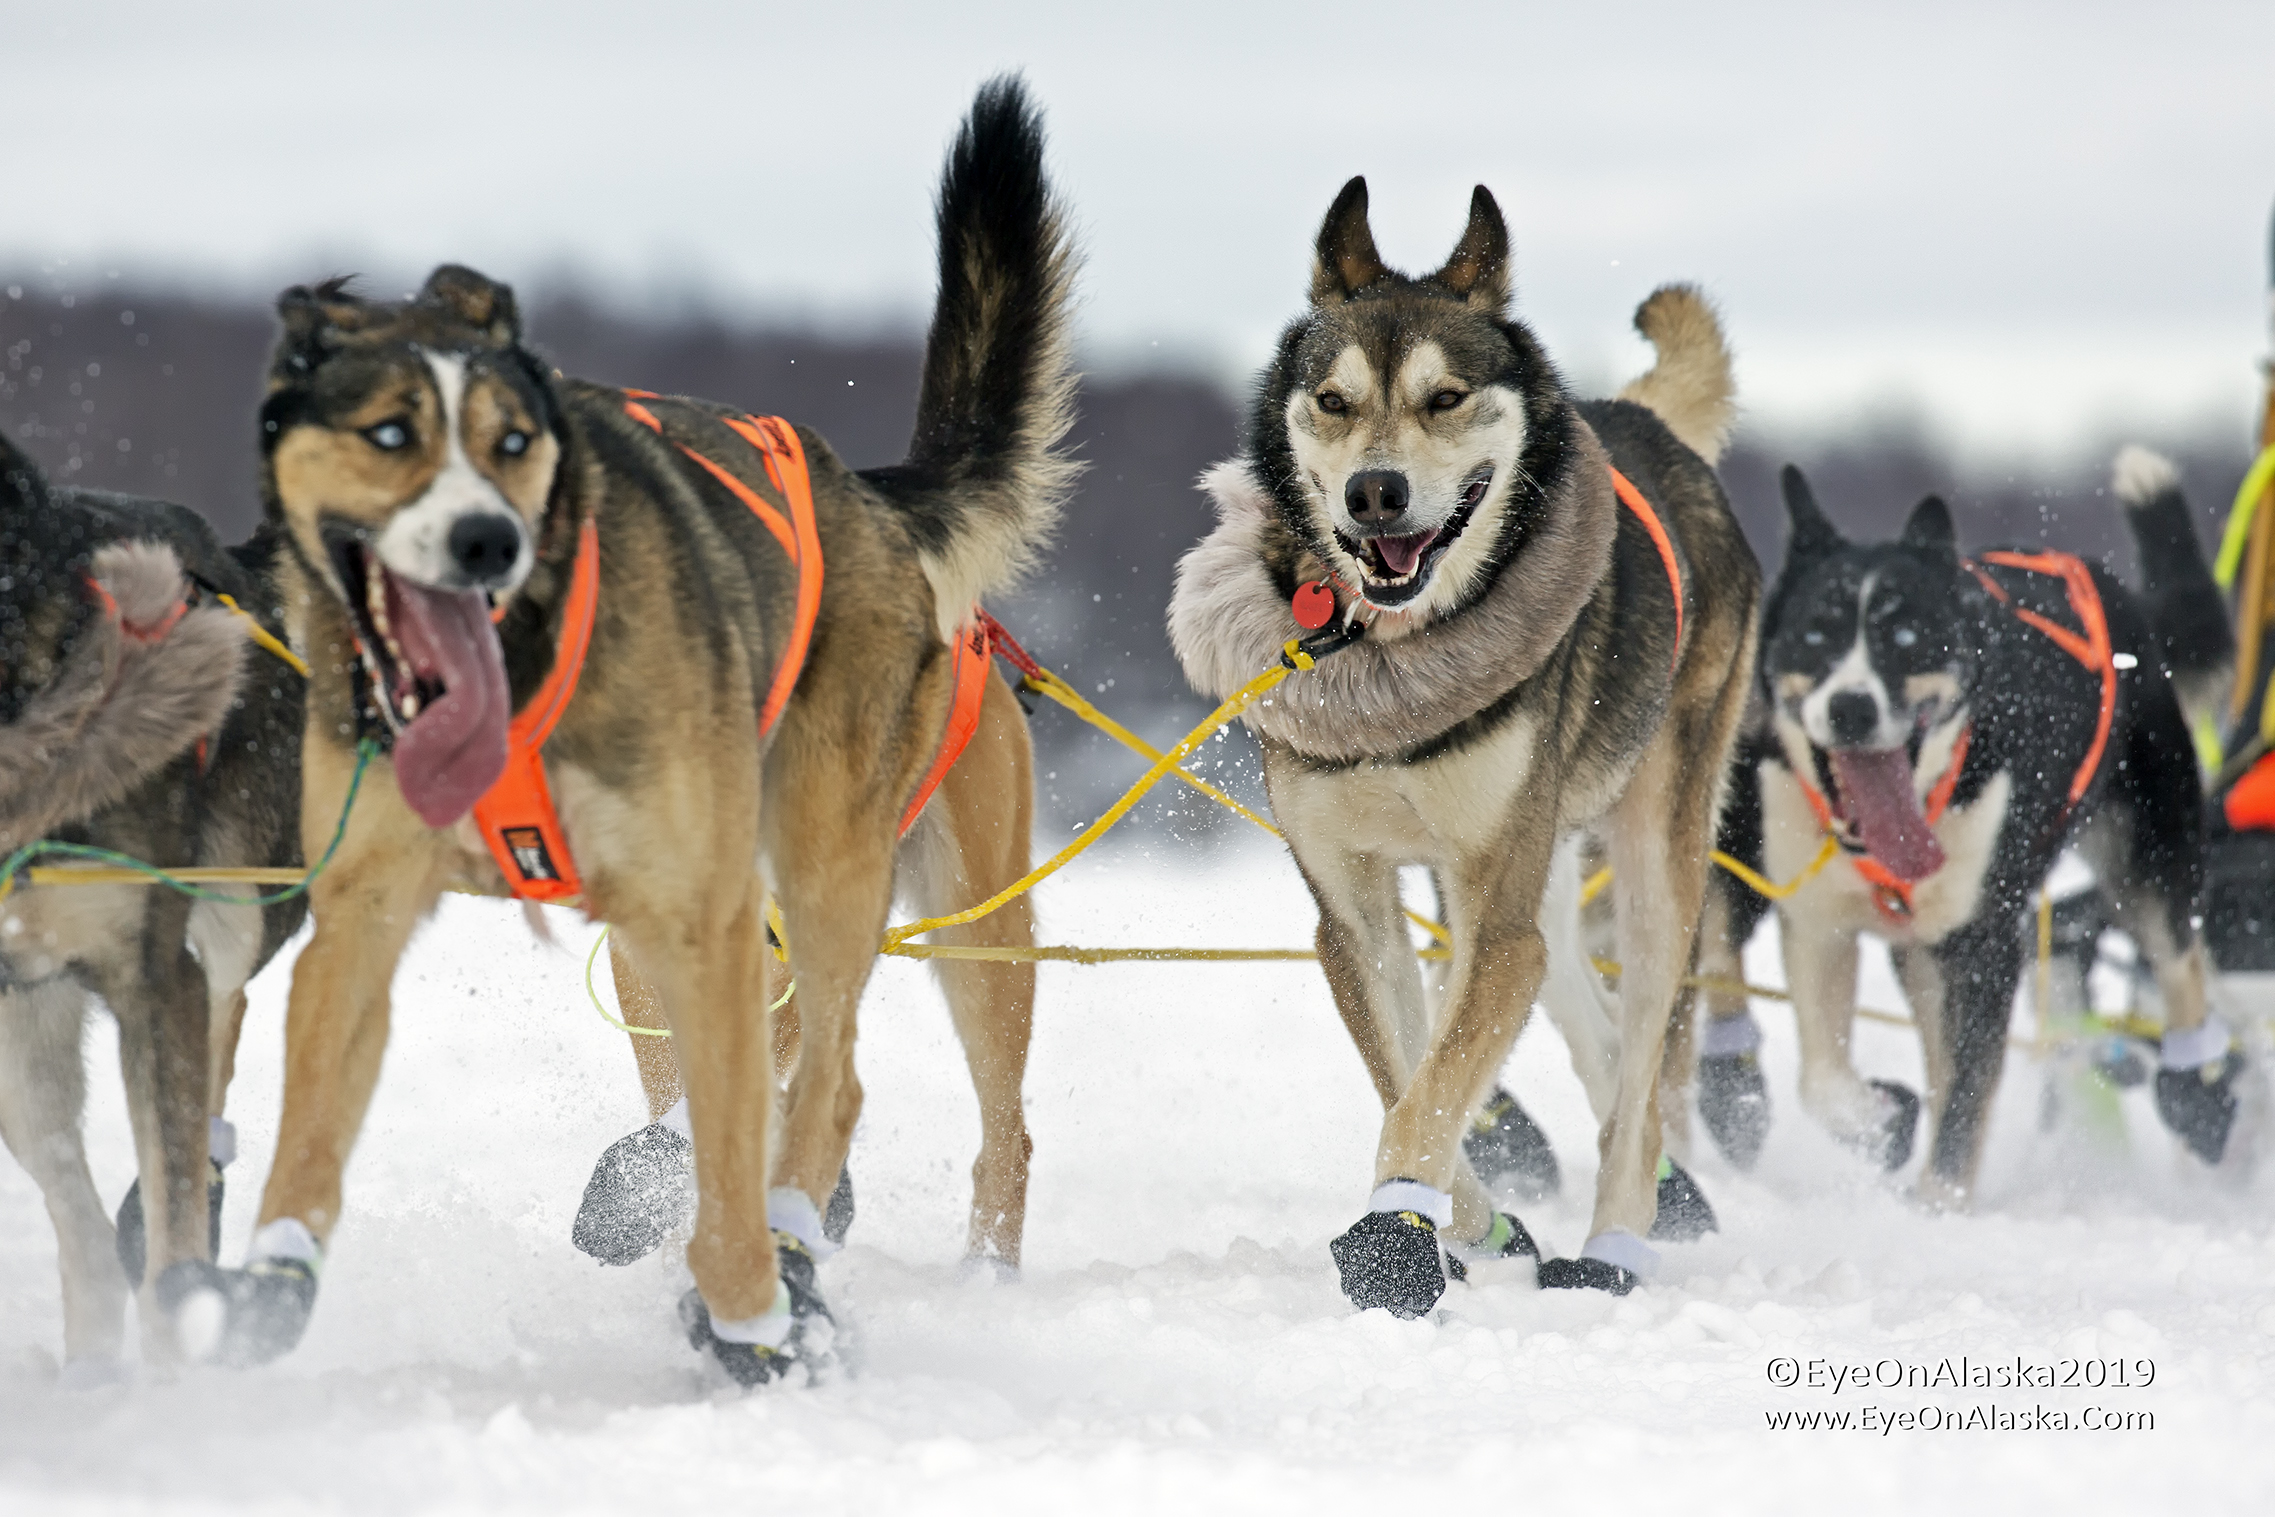 It's Iditarod time!  Mush!